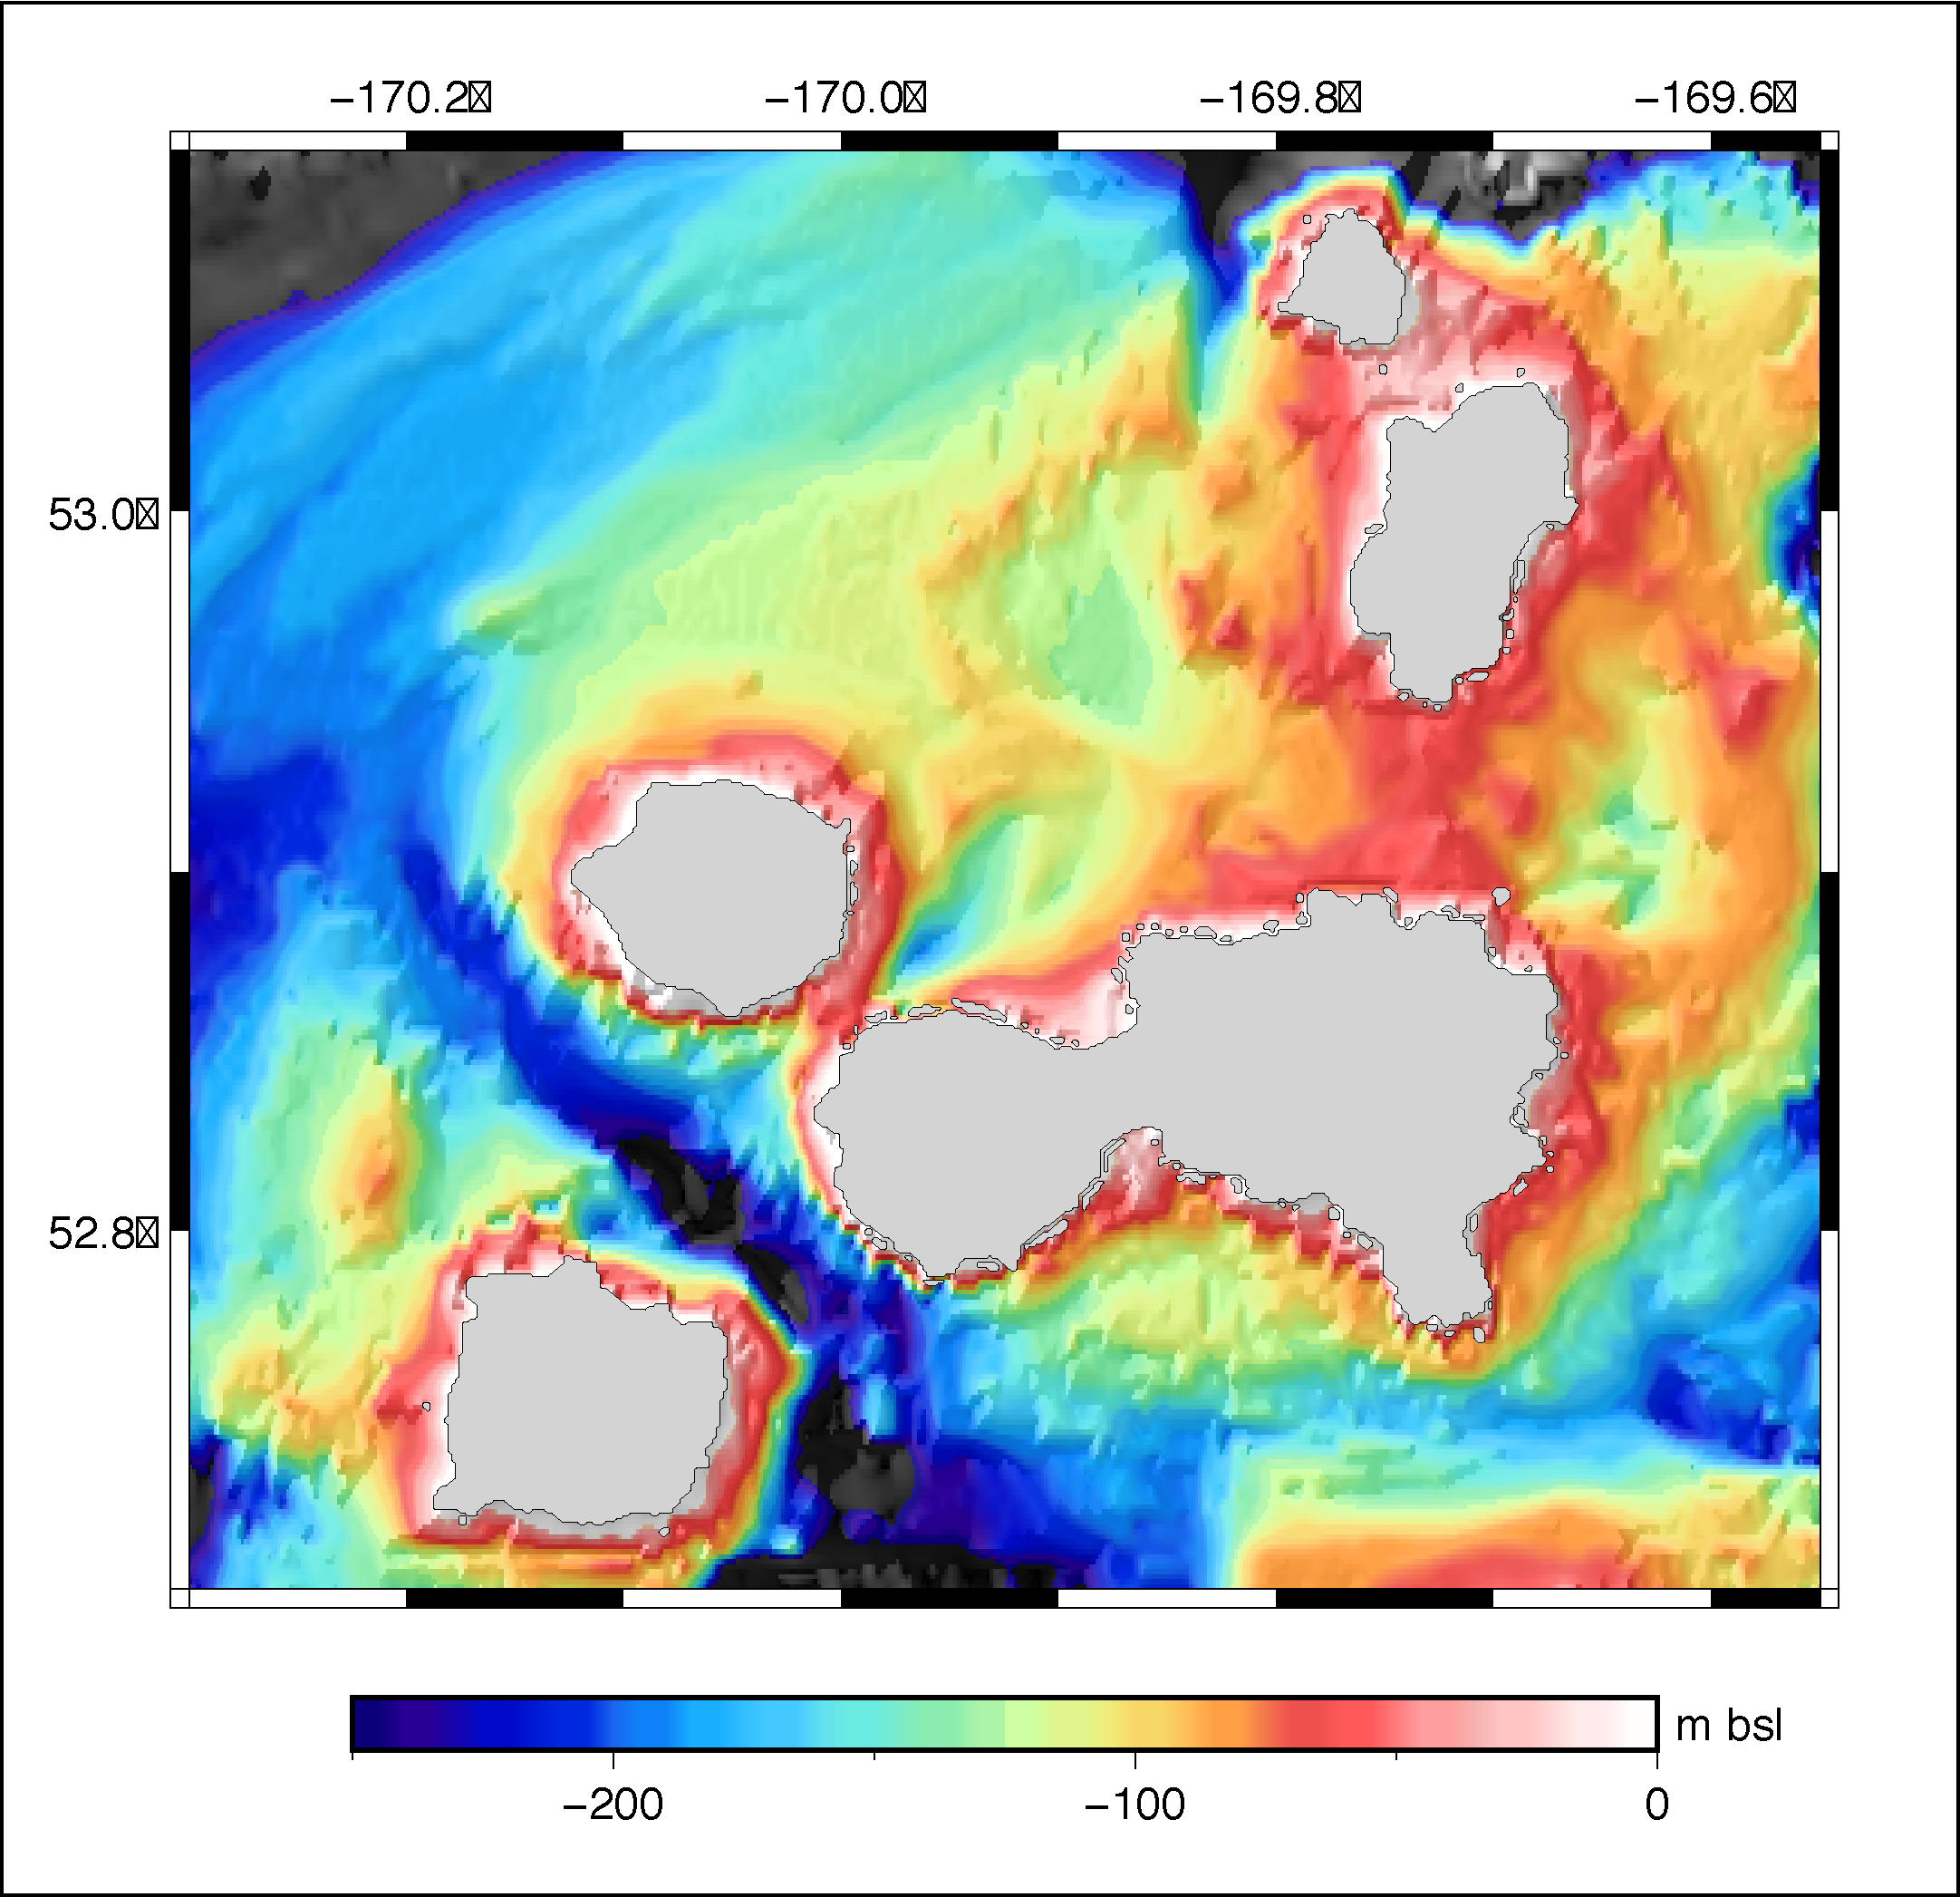 The bathymetry for the Islands of Four Mountains area, based on depth soundings collected in the mid-20th century. Image courtesy of Hélène Le Mével.